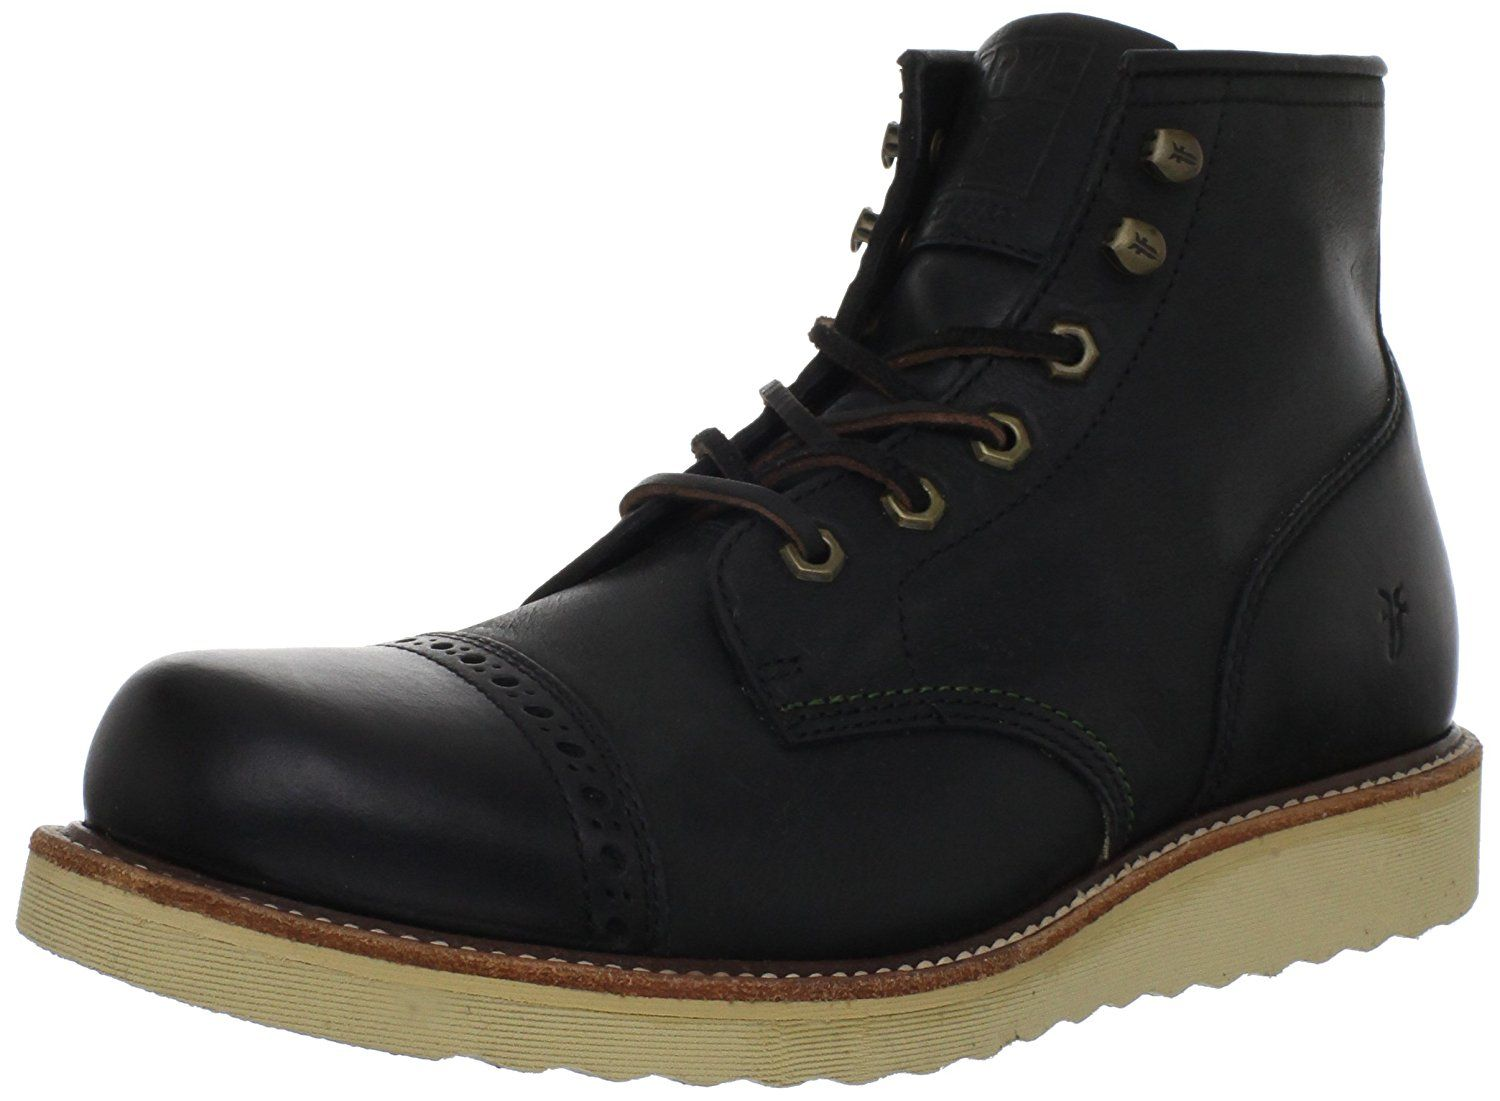 51e6a0e3e4c FRYE Men s Dakota Cap Toe Boot     Can t believe it s available